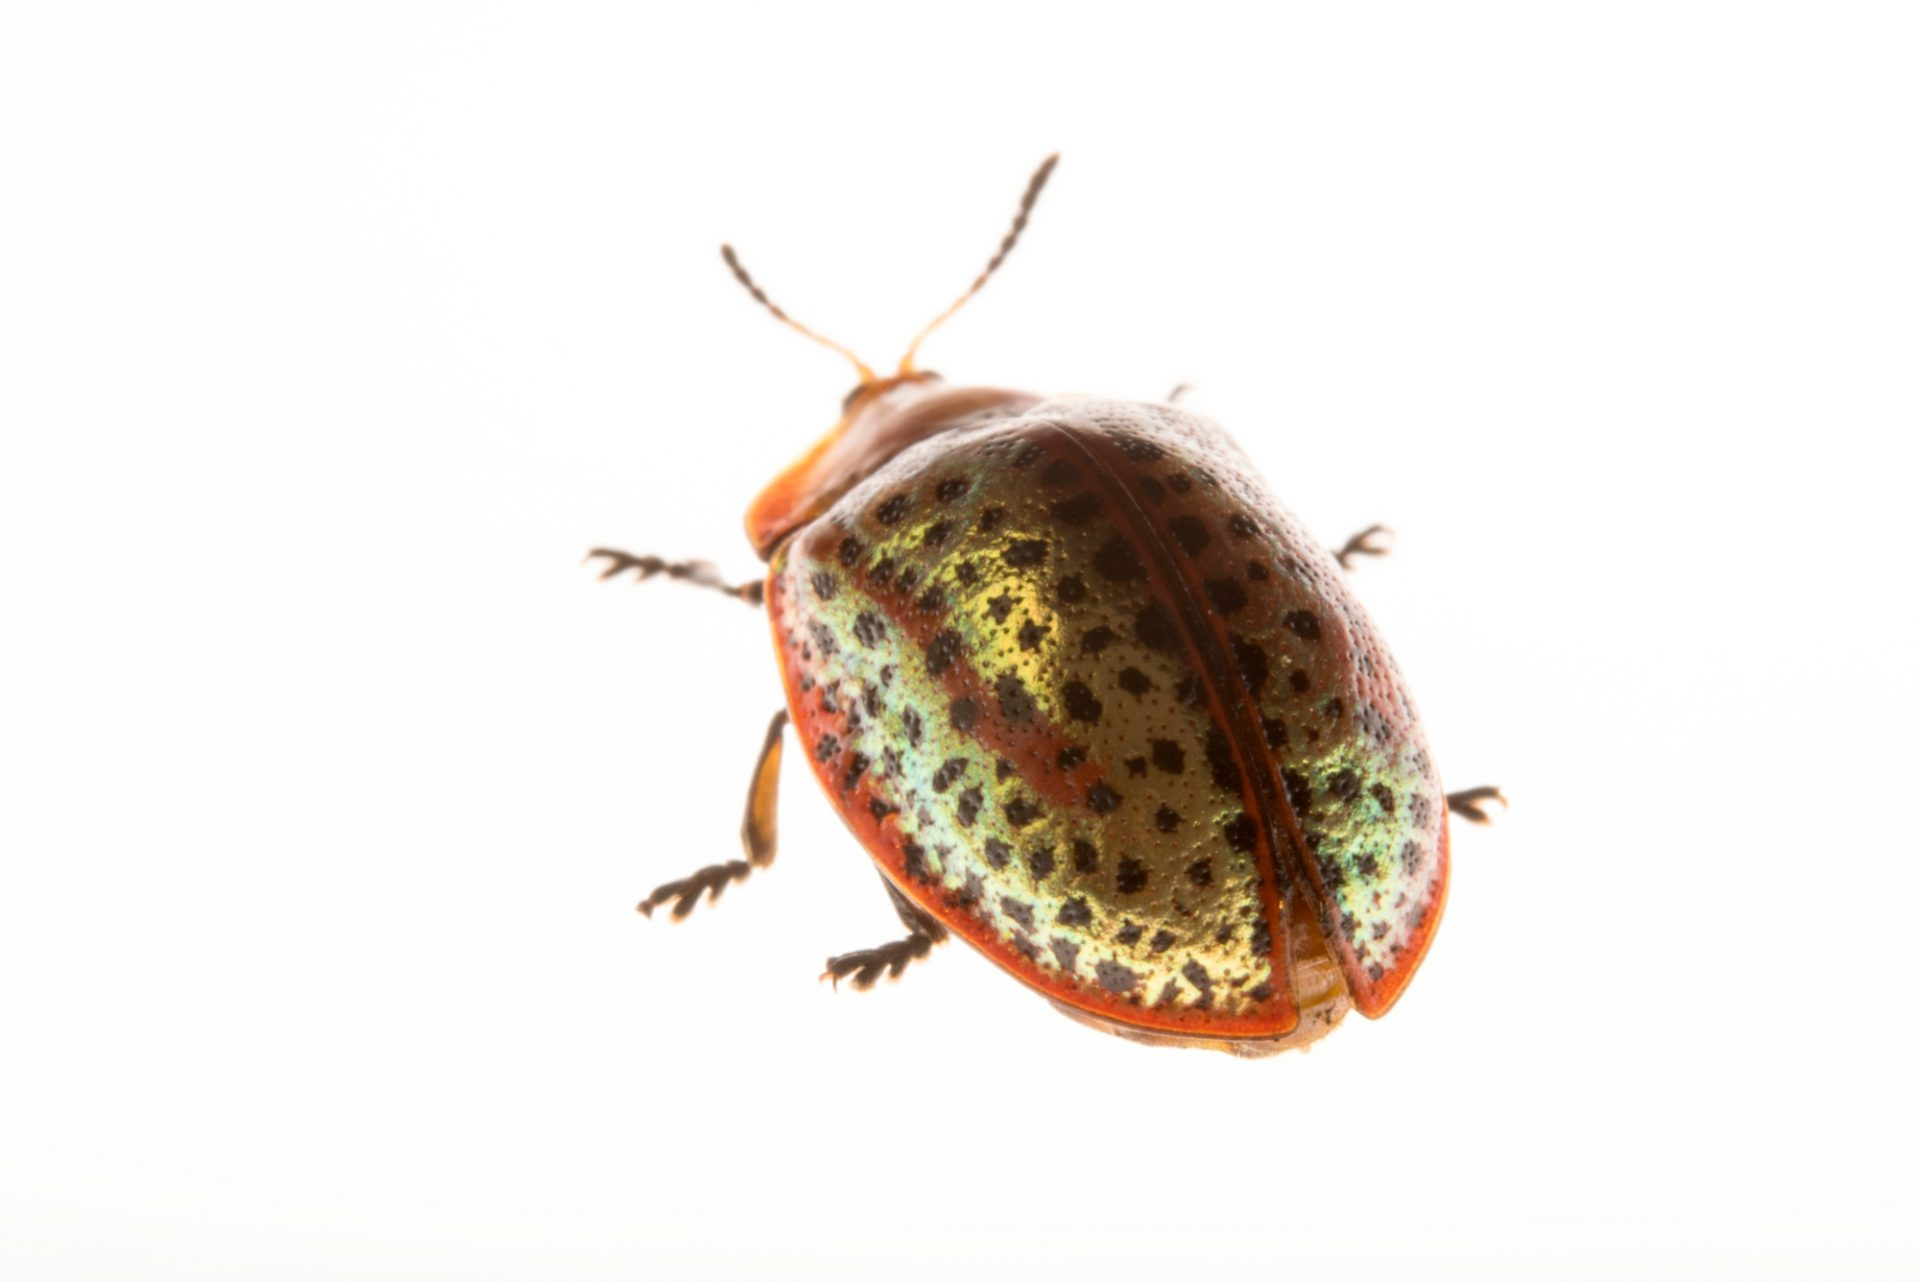 Photo: A tortoise beetle (Chelymorpha cribraria) at the Urban Entomology Lab at the University of Florida at Gainesville.